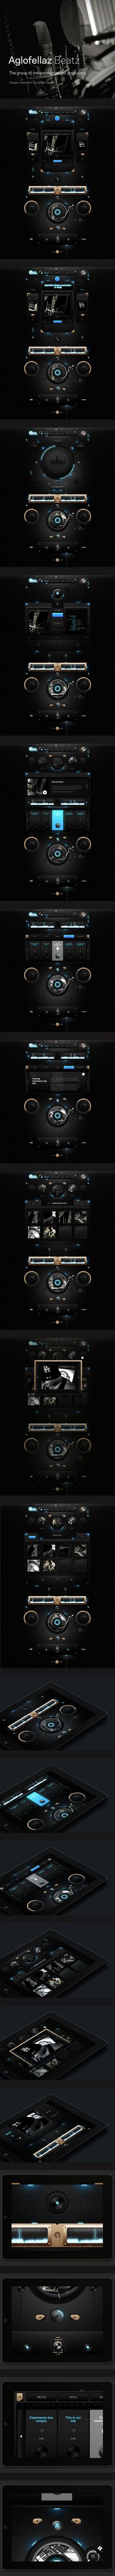 Aglofellaz Beatz by Dominik Wasieńko, via Behance